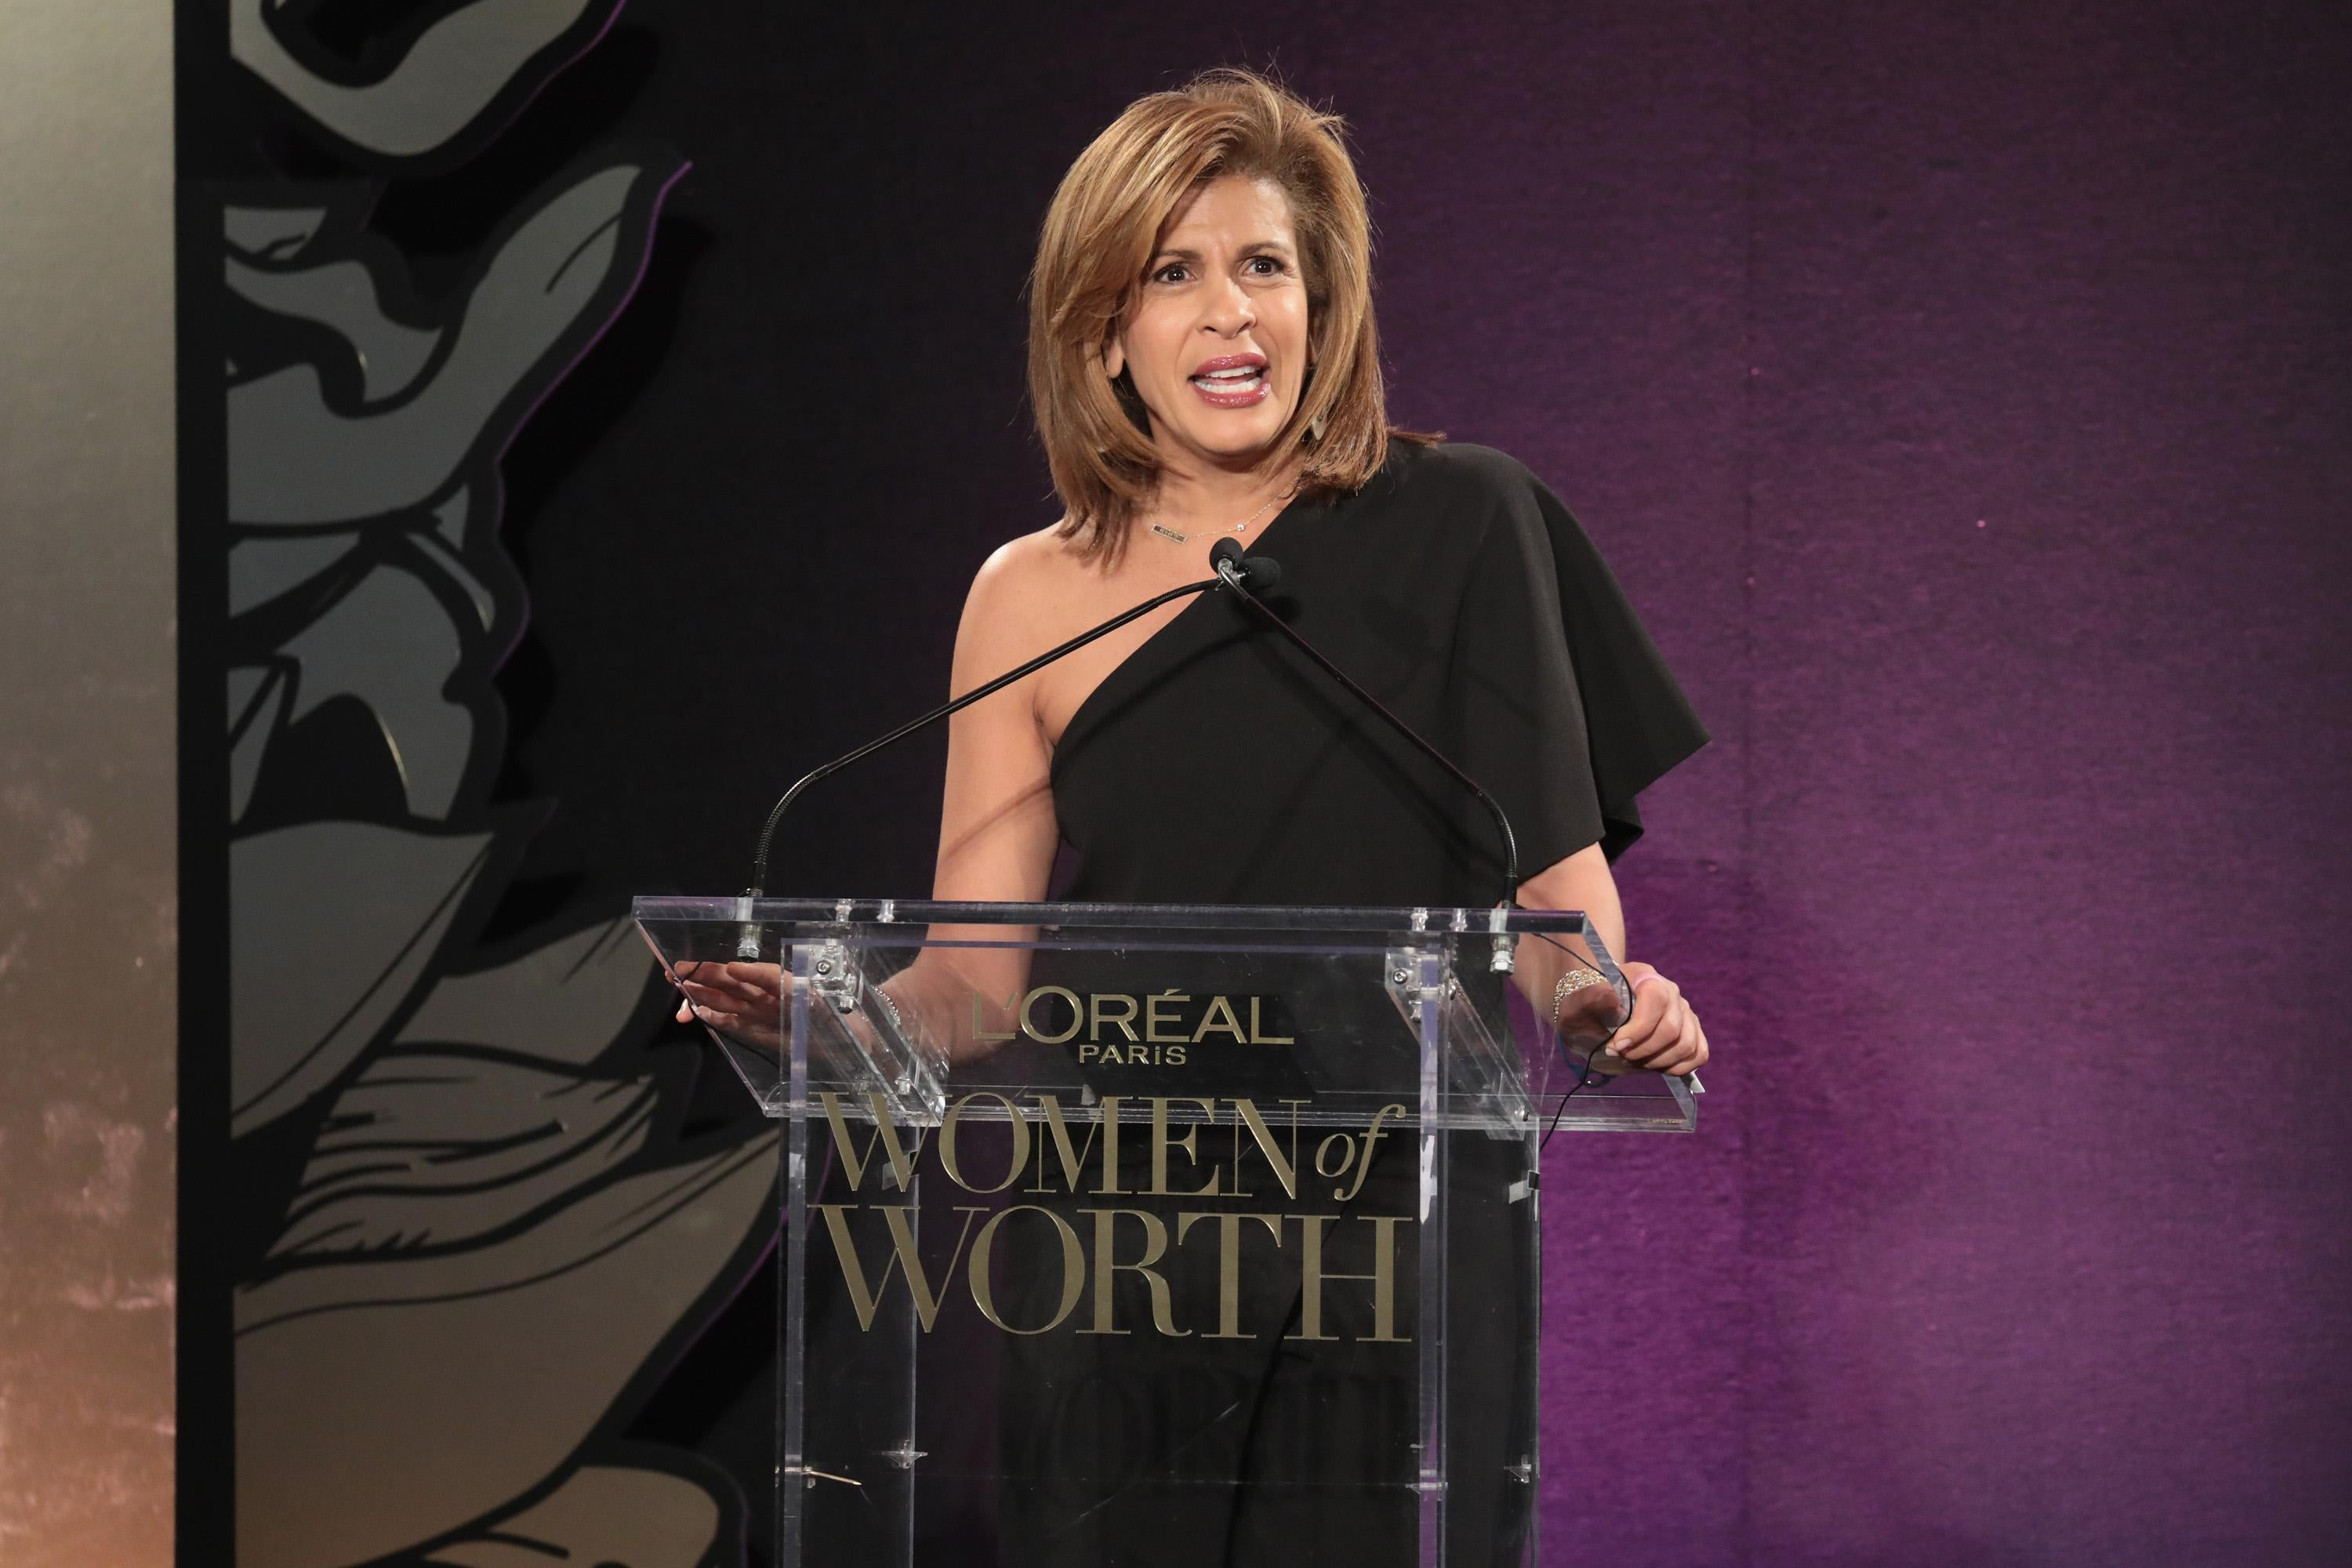 Hoda Kotb speaks onstage during the L'Oreal Paris Women of Worth Celebration on Dec. 6 in New York City.